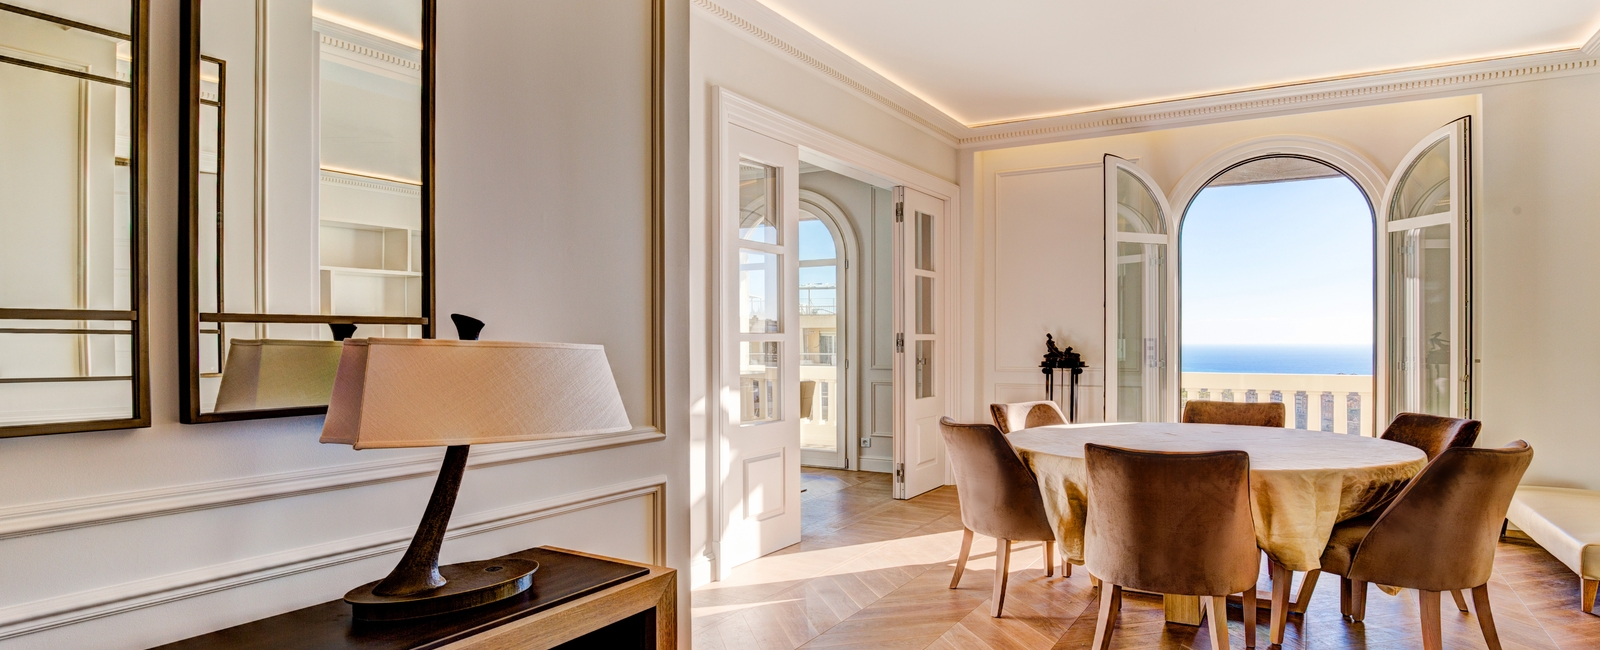 "La Costa Properties Monaco : ""Bourgeois"" apartment - overlooking Monaco"